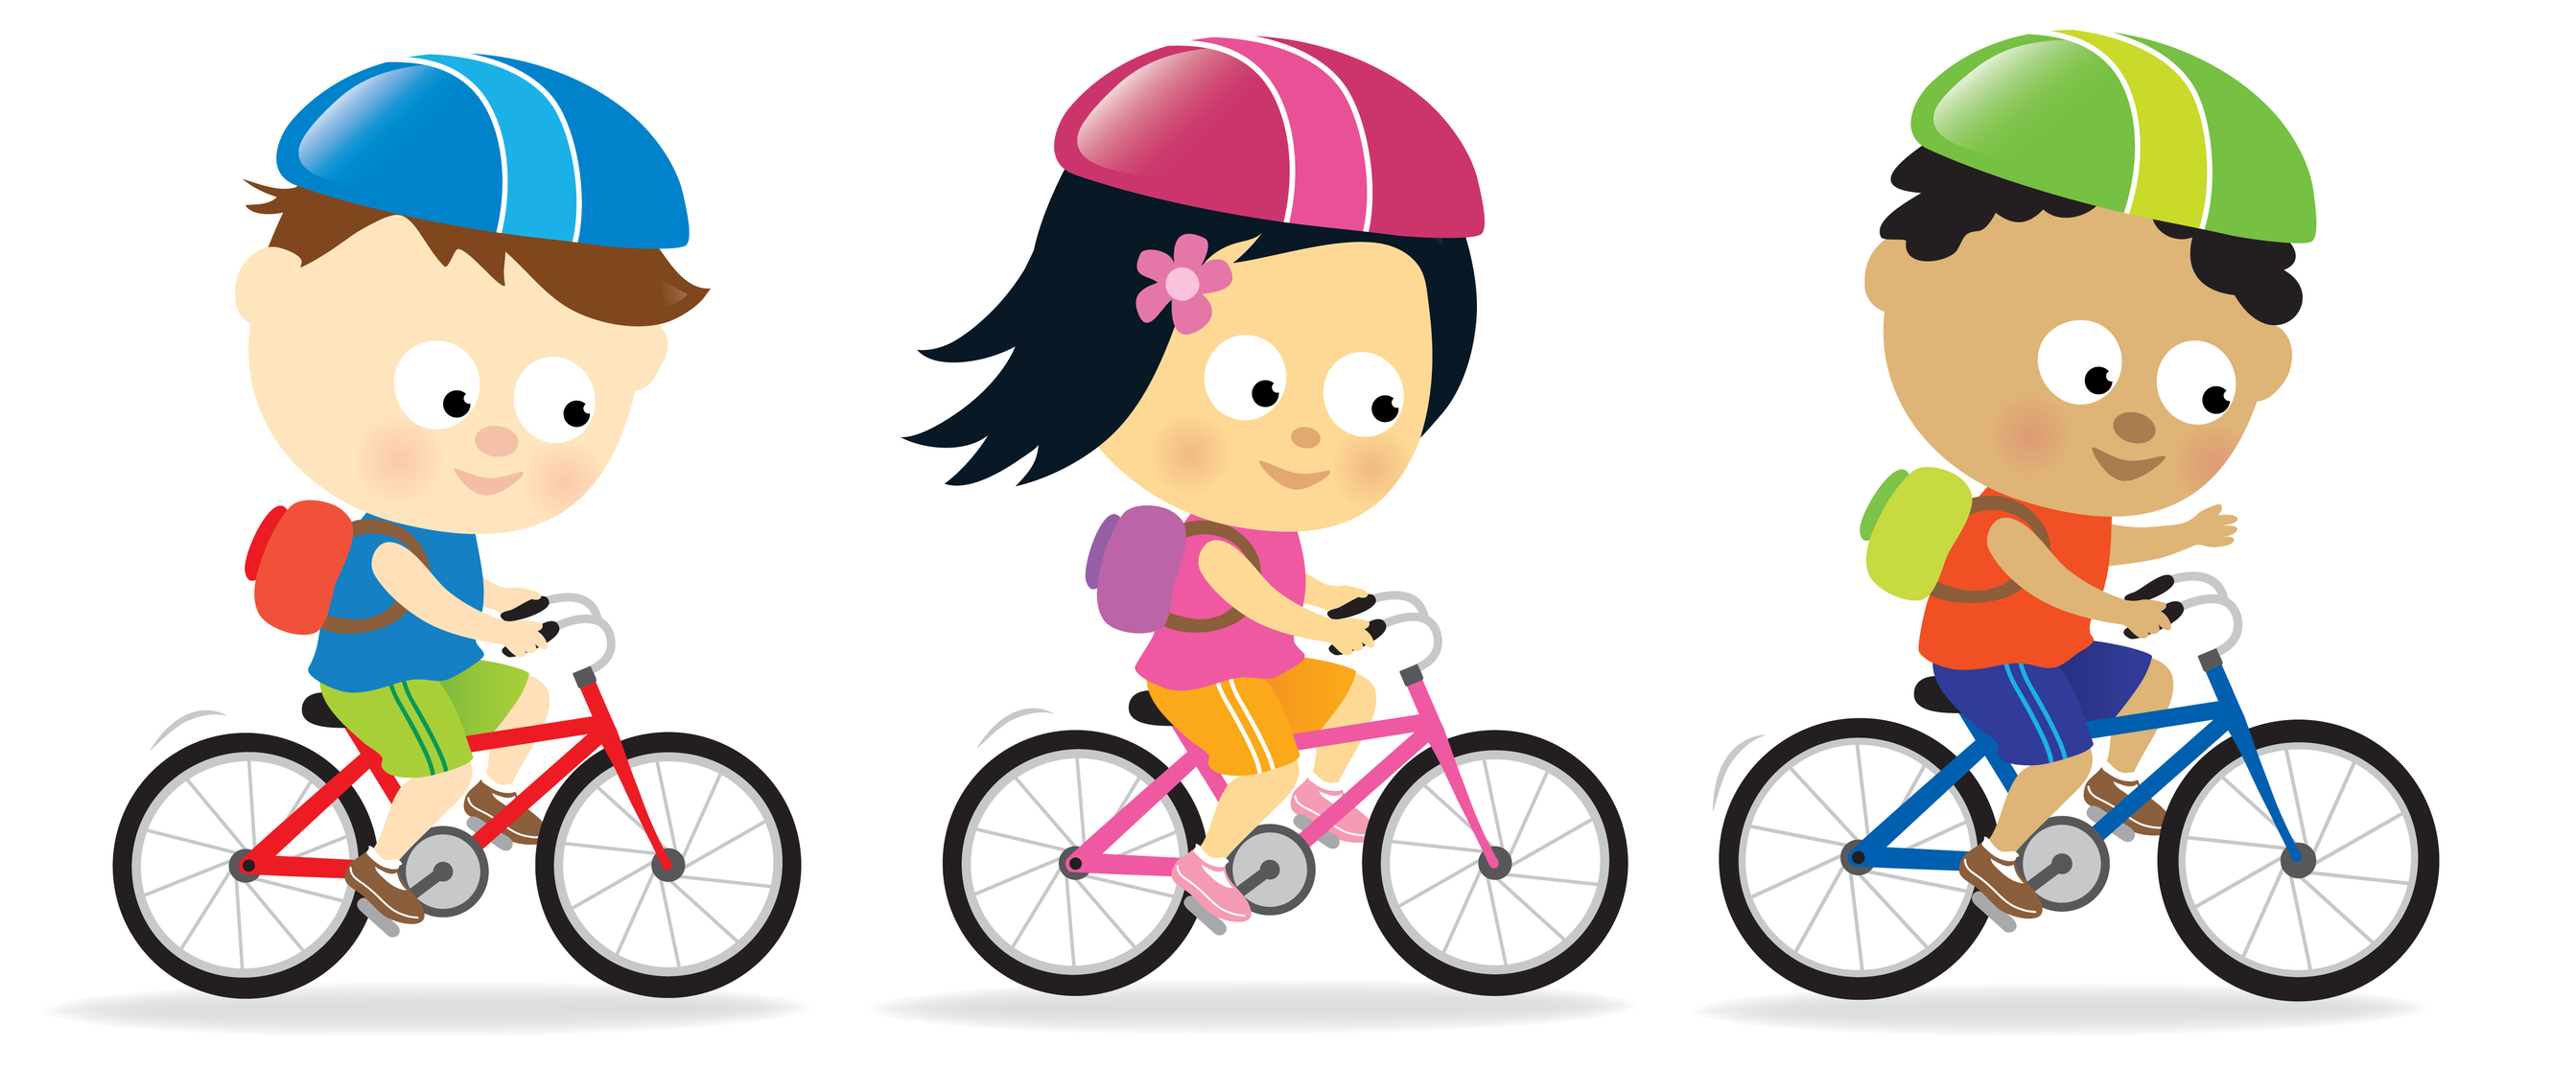 2686x1116 Kids Amp Bicycle Safety Nhtsa